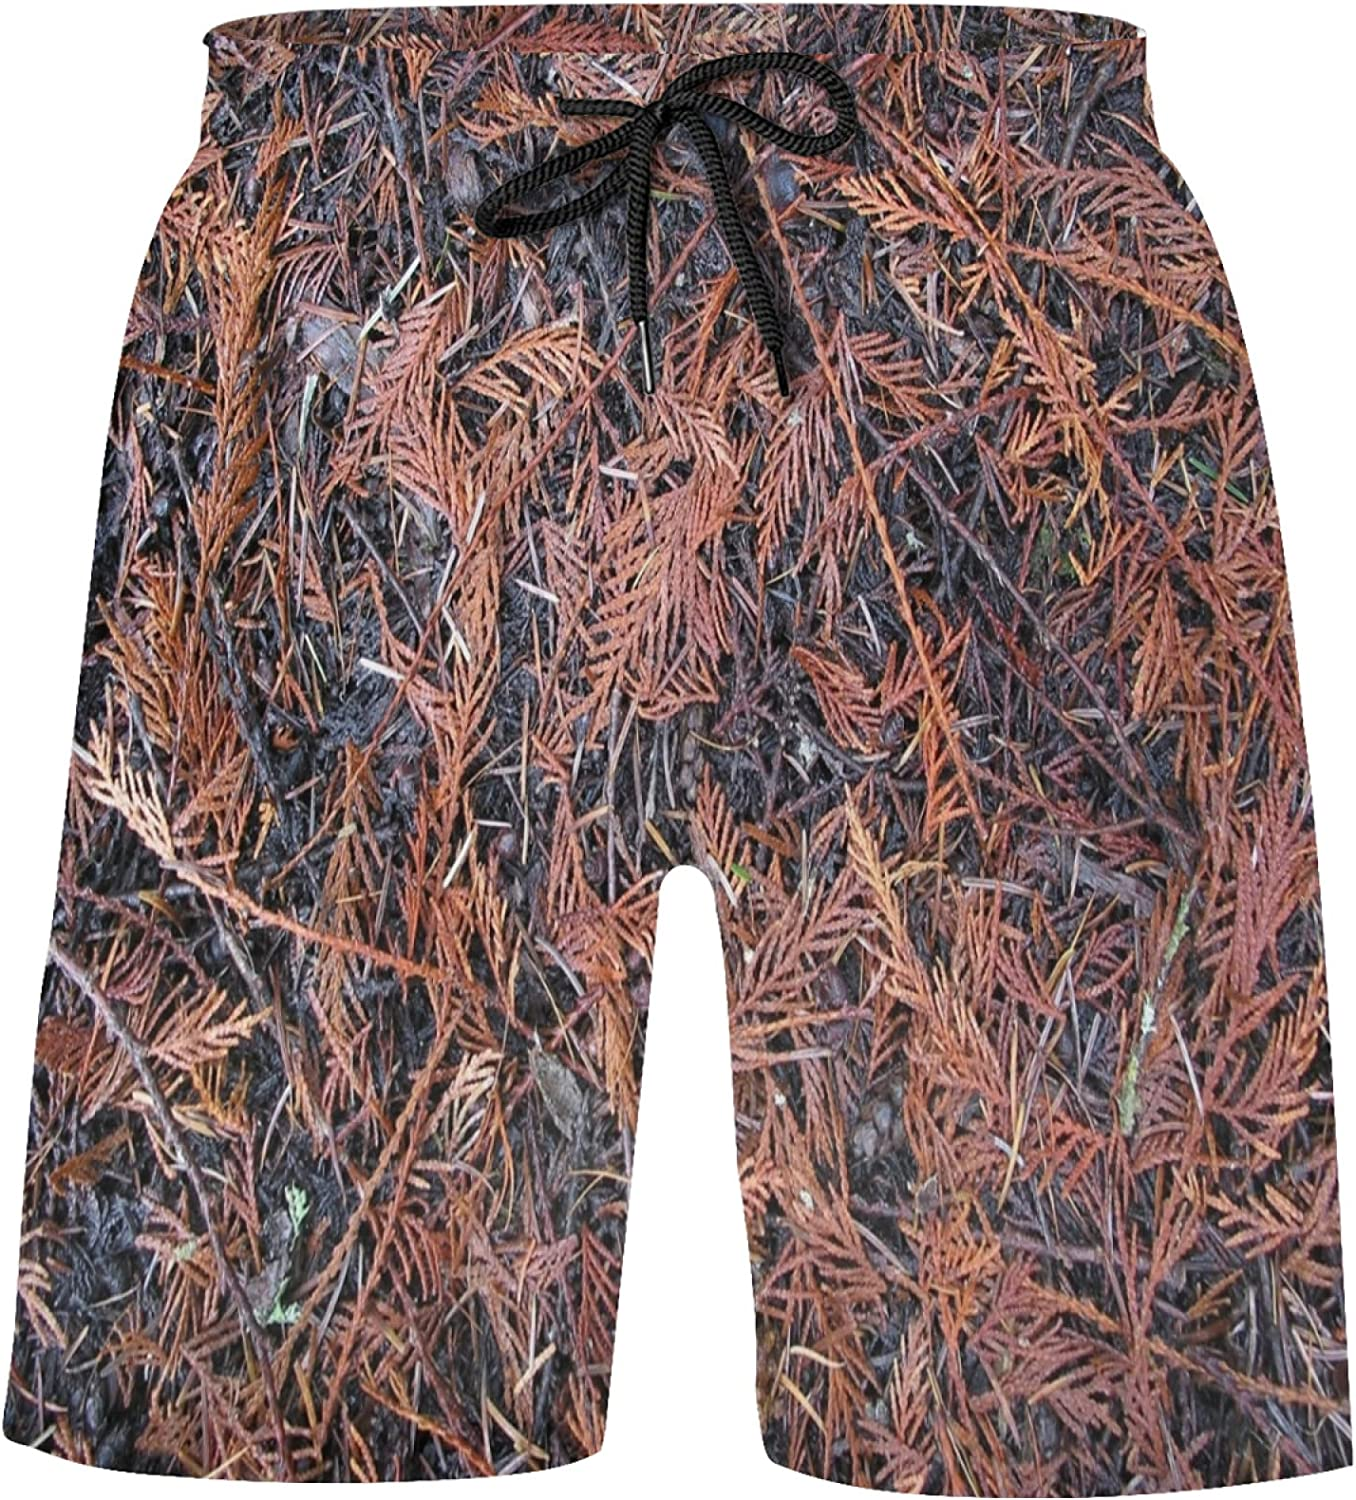 ZXZNC Cedar Forest Floor of Twigs and Needles Bathing Suits Athletic Basketball Shorts Swi